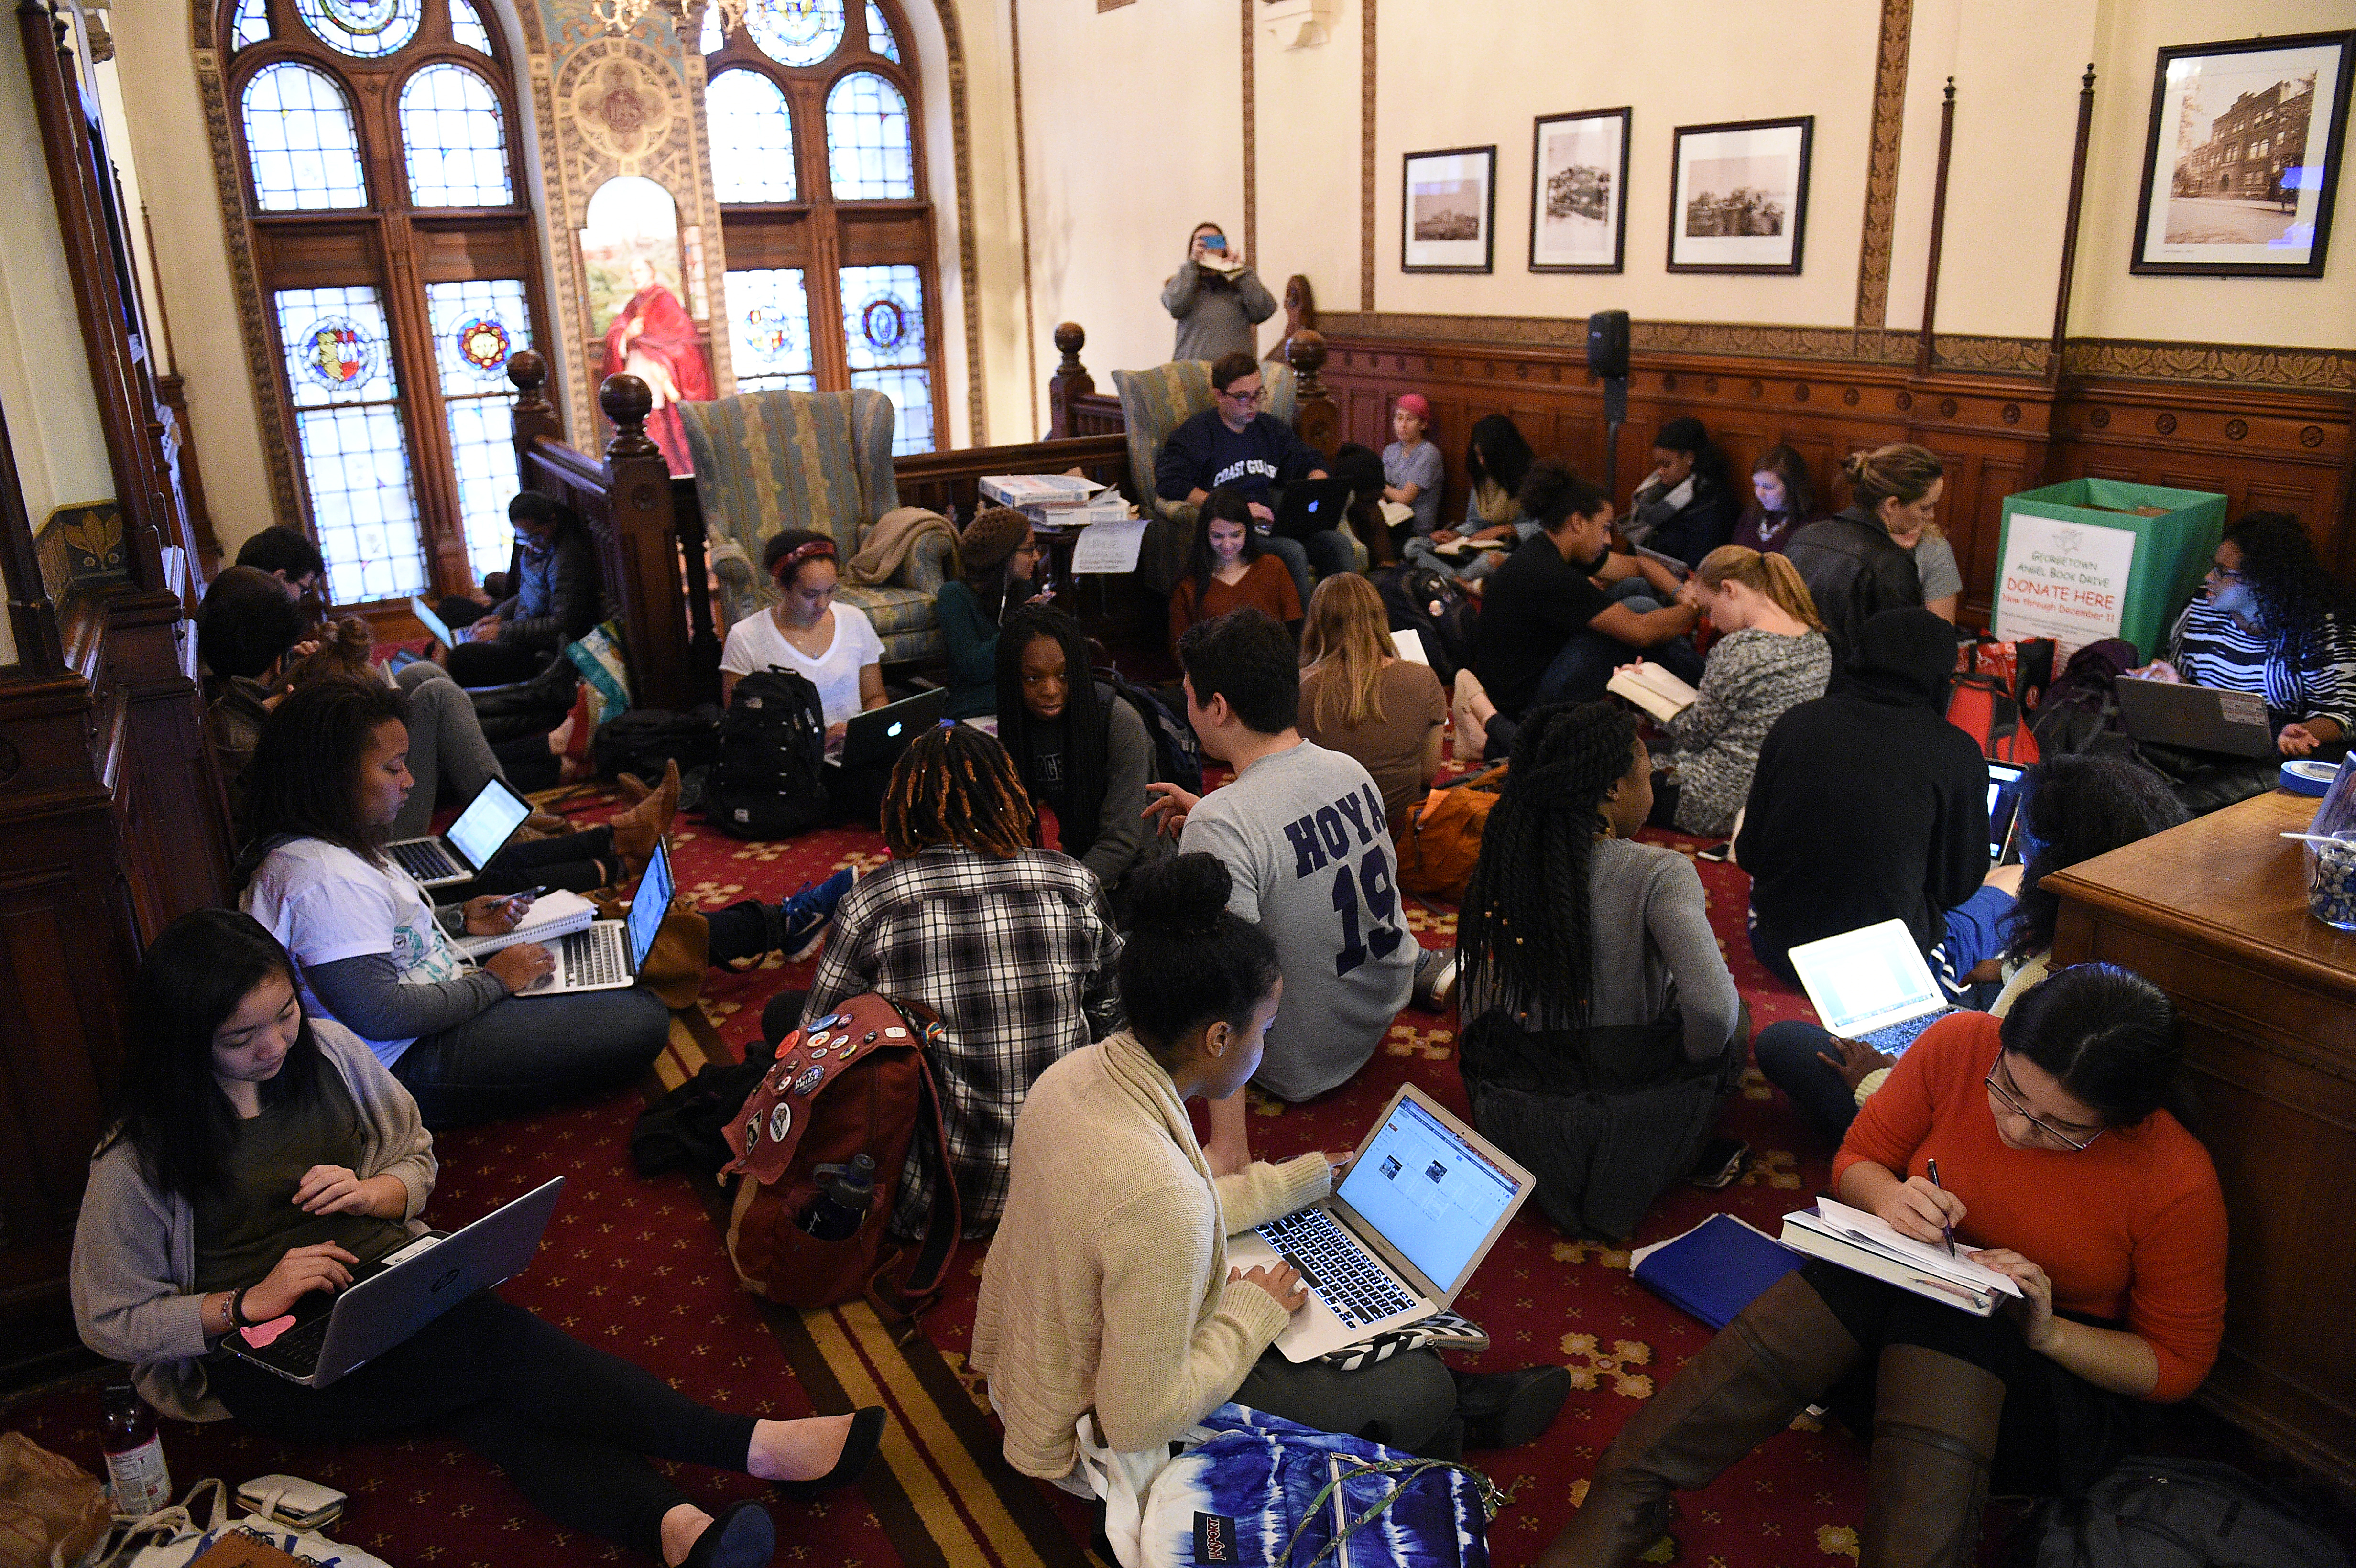 Around 30 students sit in in front of the office of John J. DeGioia, president of Georgetown University in Washington D.C. on Nov. 13, 2015. The sit in was in solidarity with other student protests throughout the country addressing racial discrimination on campus, including at University of Missouri and Yale University. The students also demanded the change of the name of Mulledy Hall on campus.